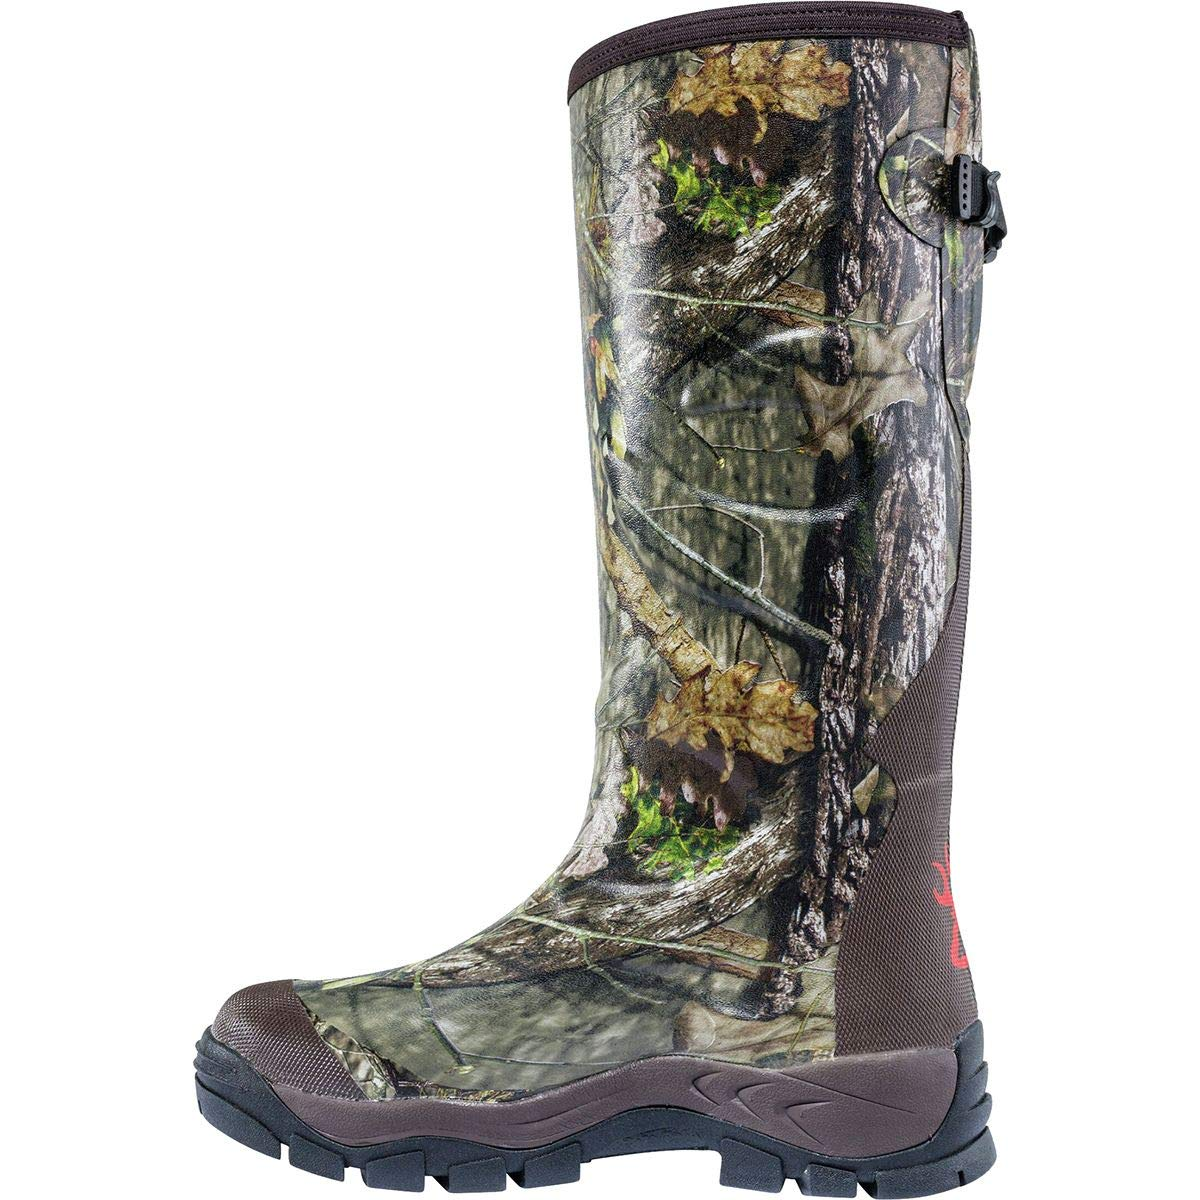 Browning X-Vantage 17in 800g Insulatead Boot Mens